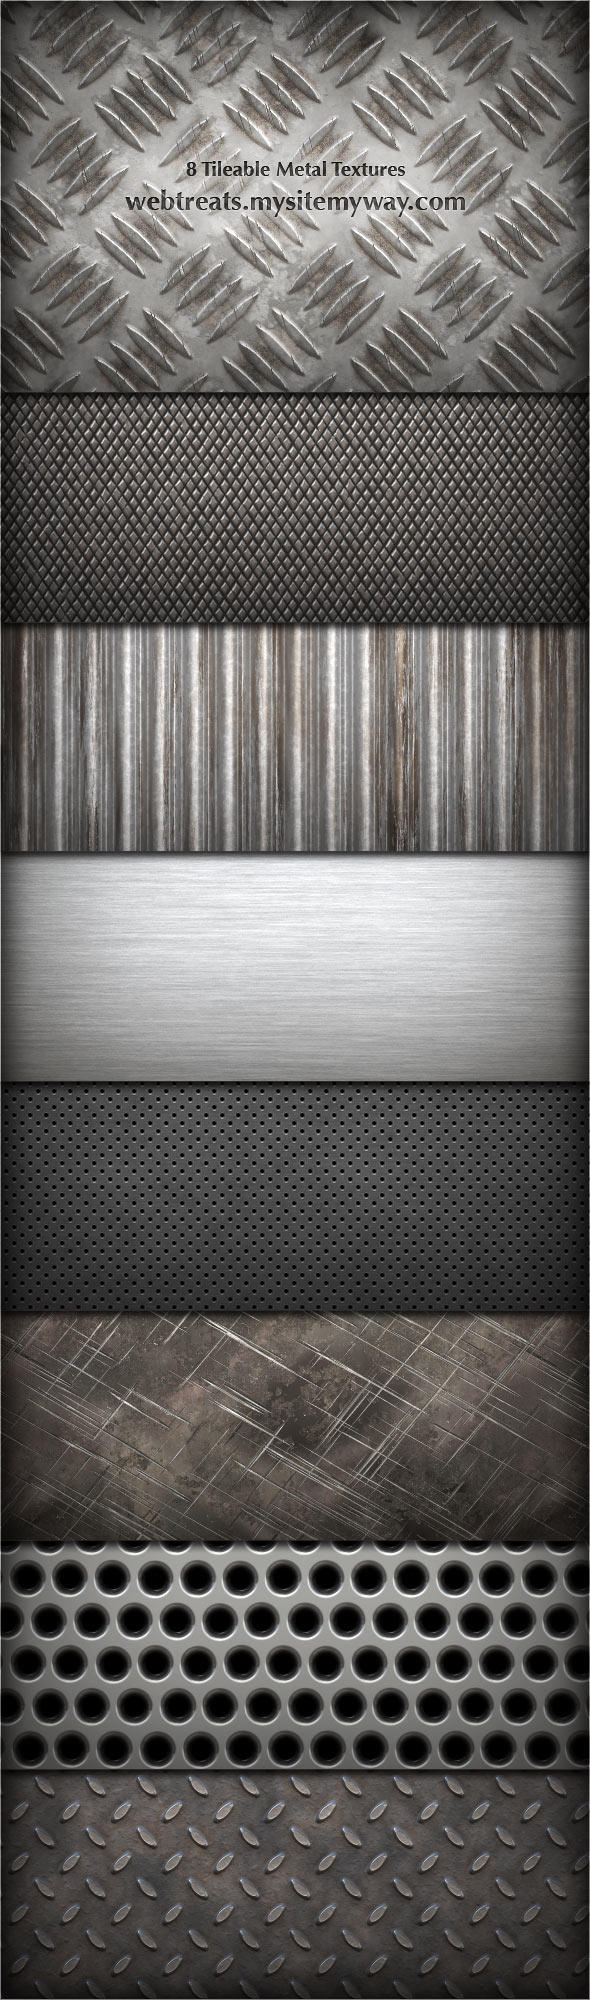 8 Tileable Metal Textures By Webtreatsetc On Deviantart